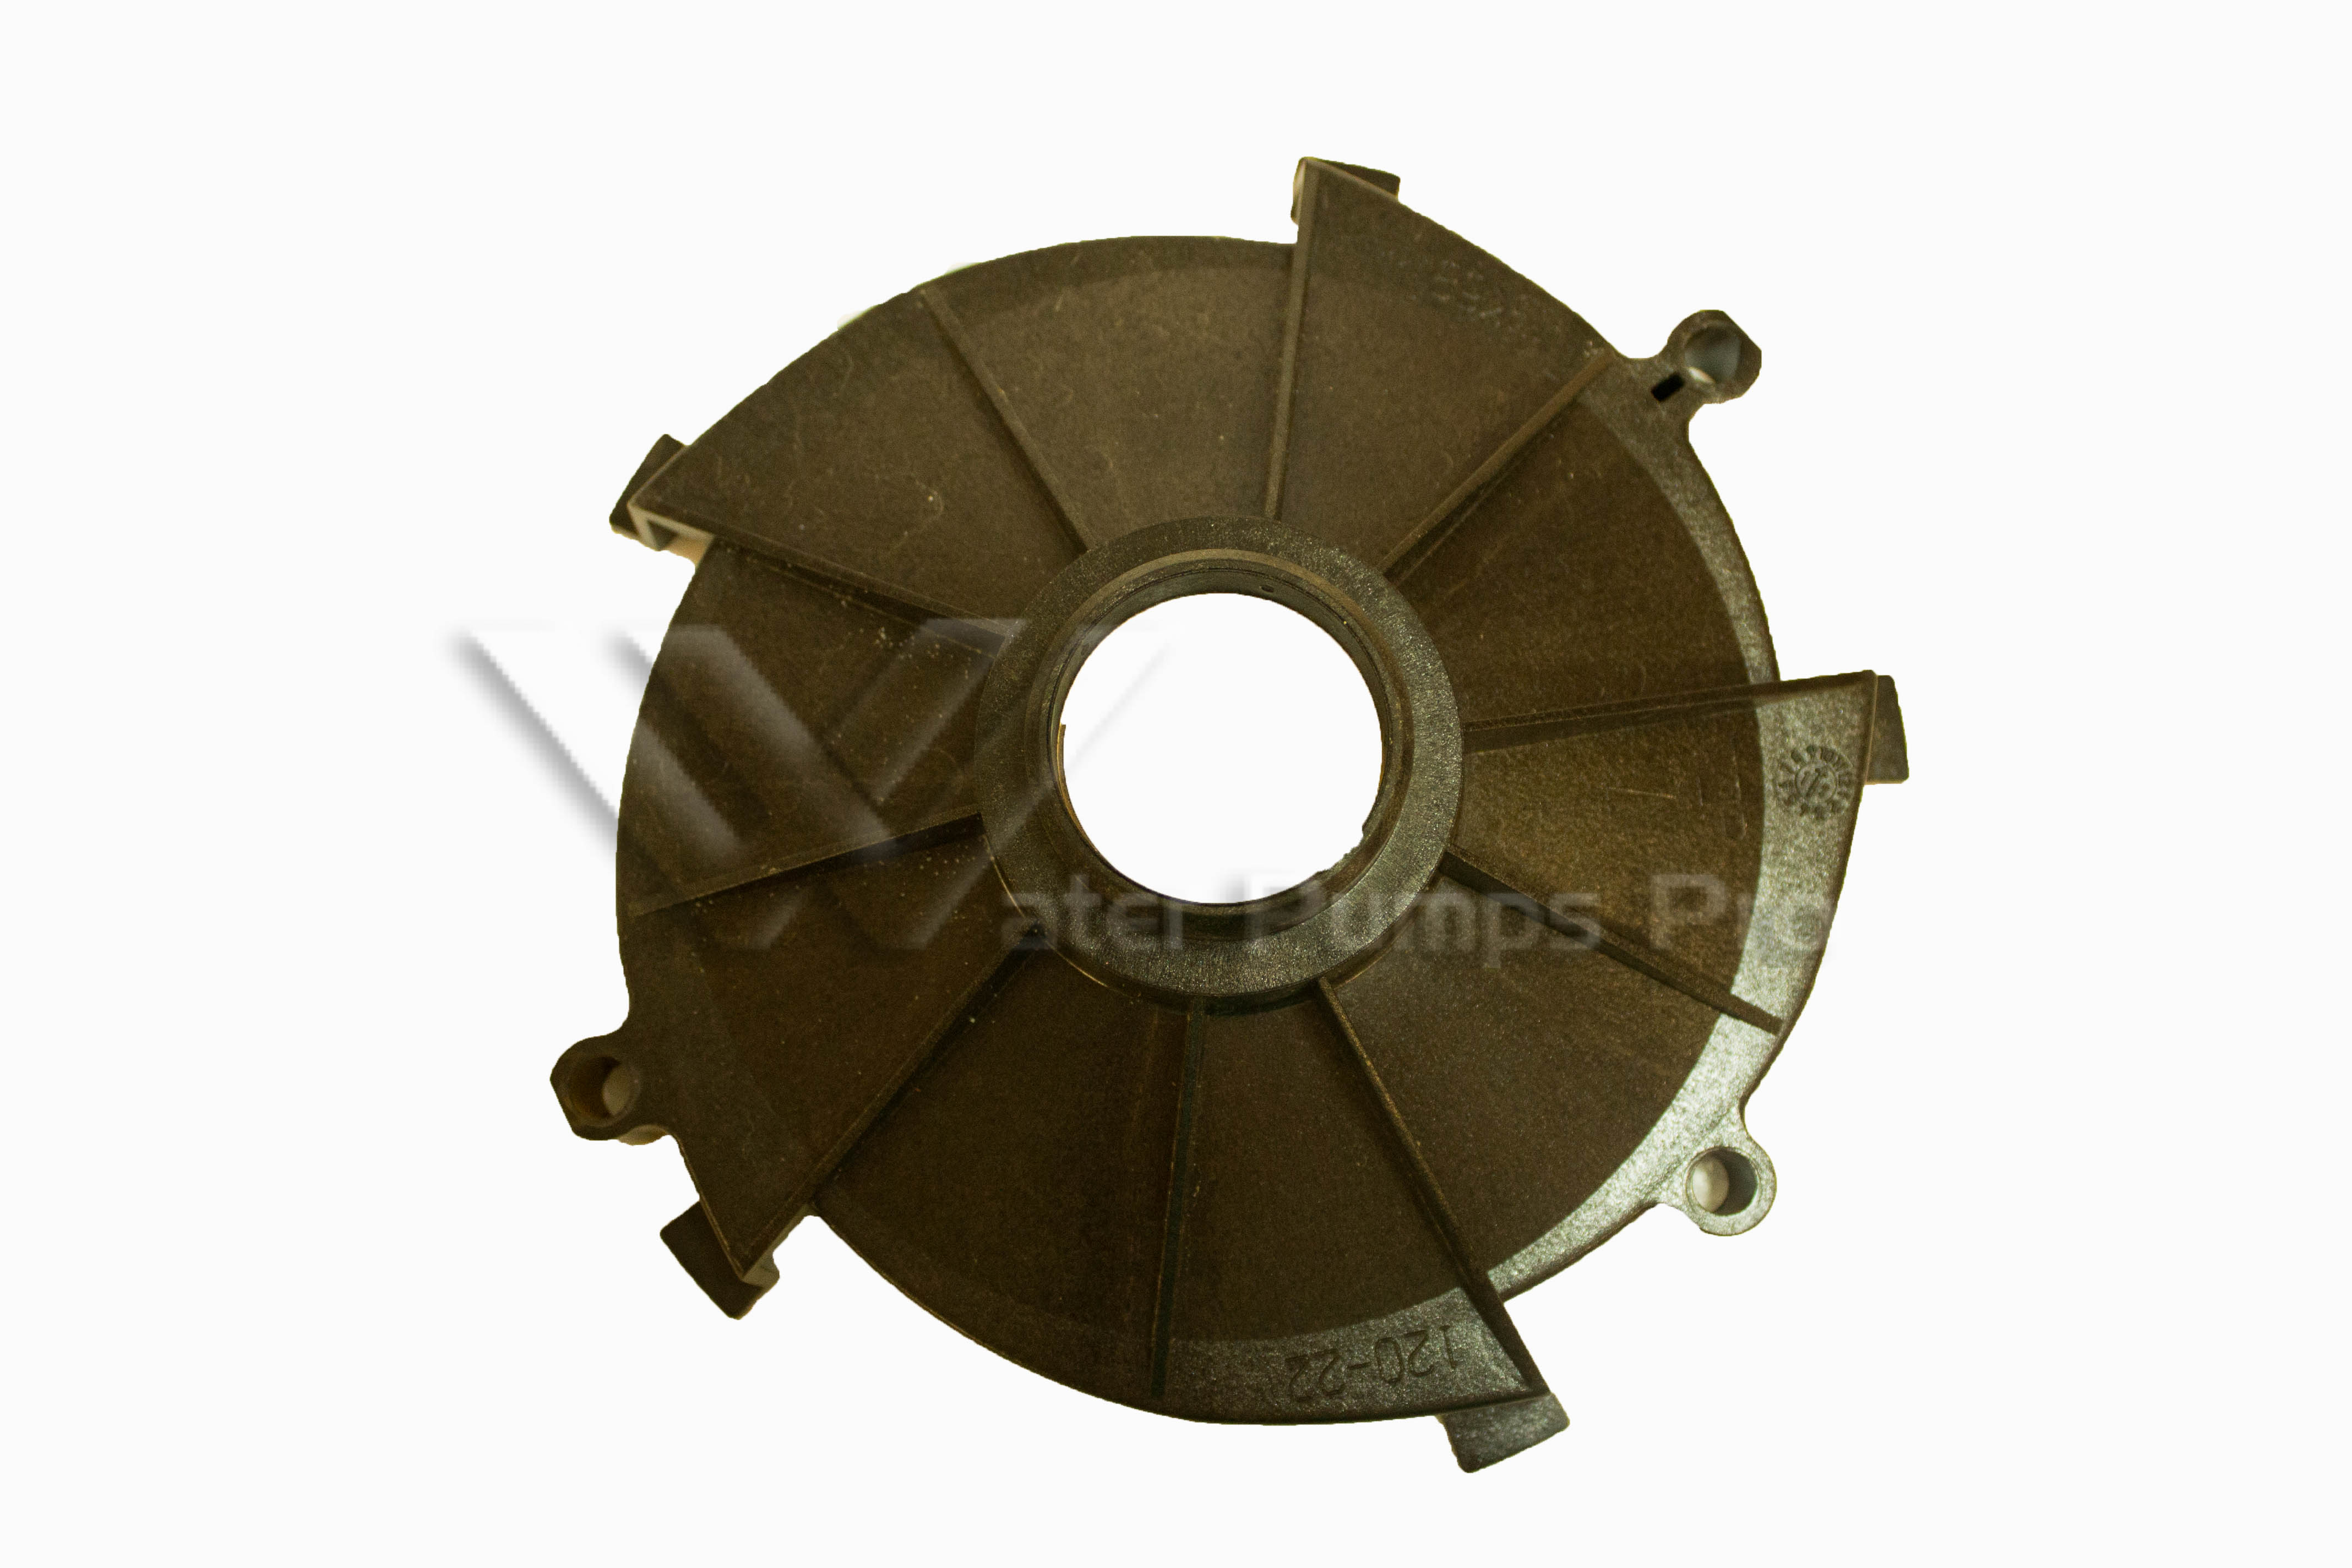 3k68 - Guidevane - Goulds for J15S J15 goulds water well jet pum